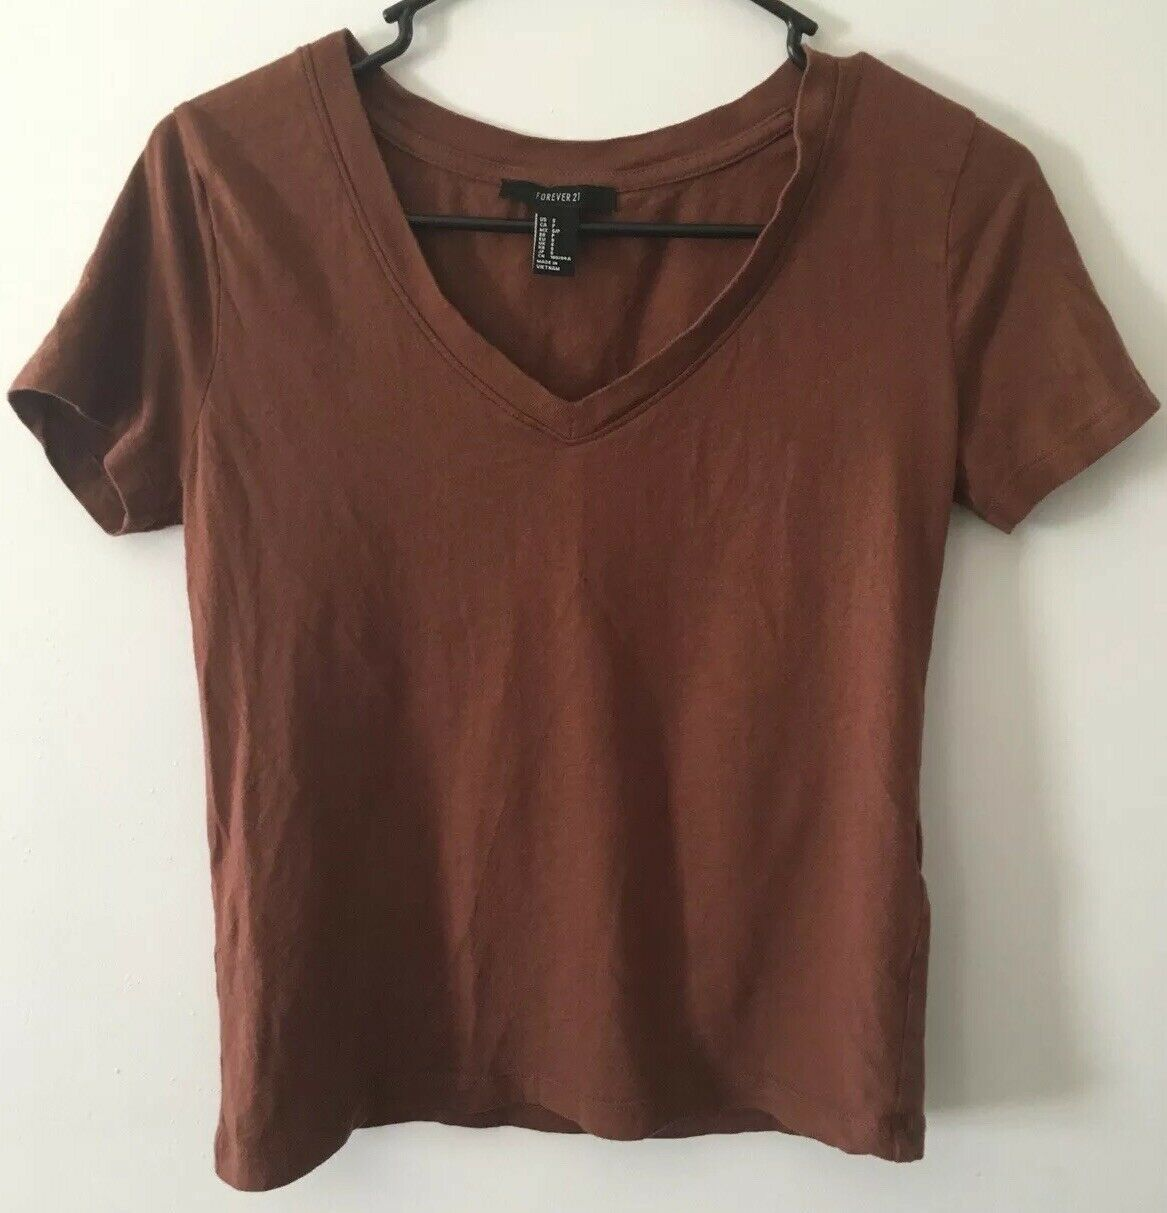 Primary image for Forever 21 Girls V Neck T-shirt Size Small